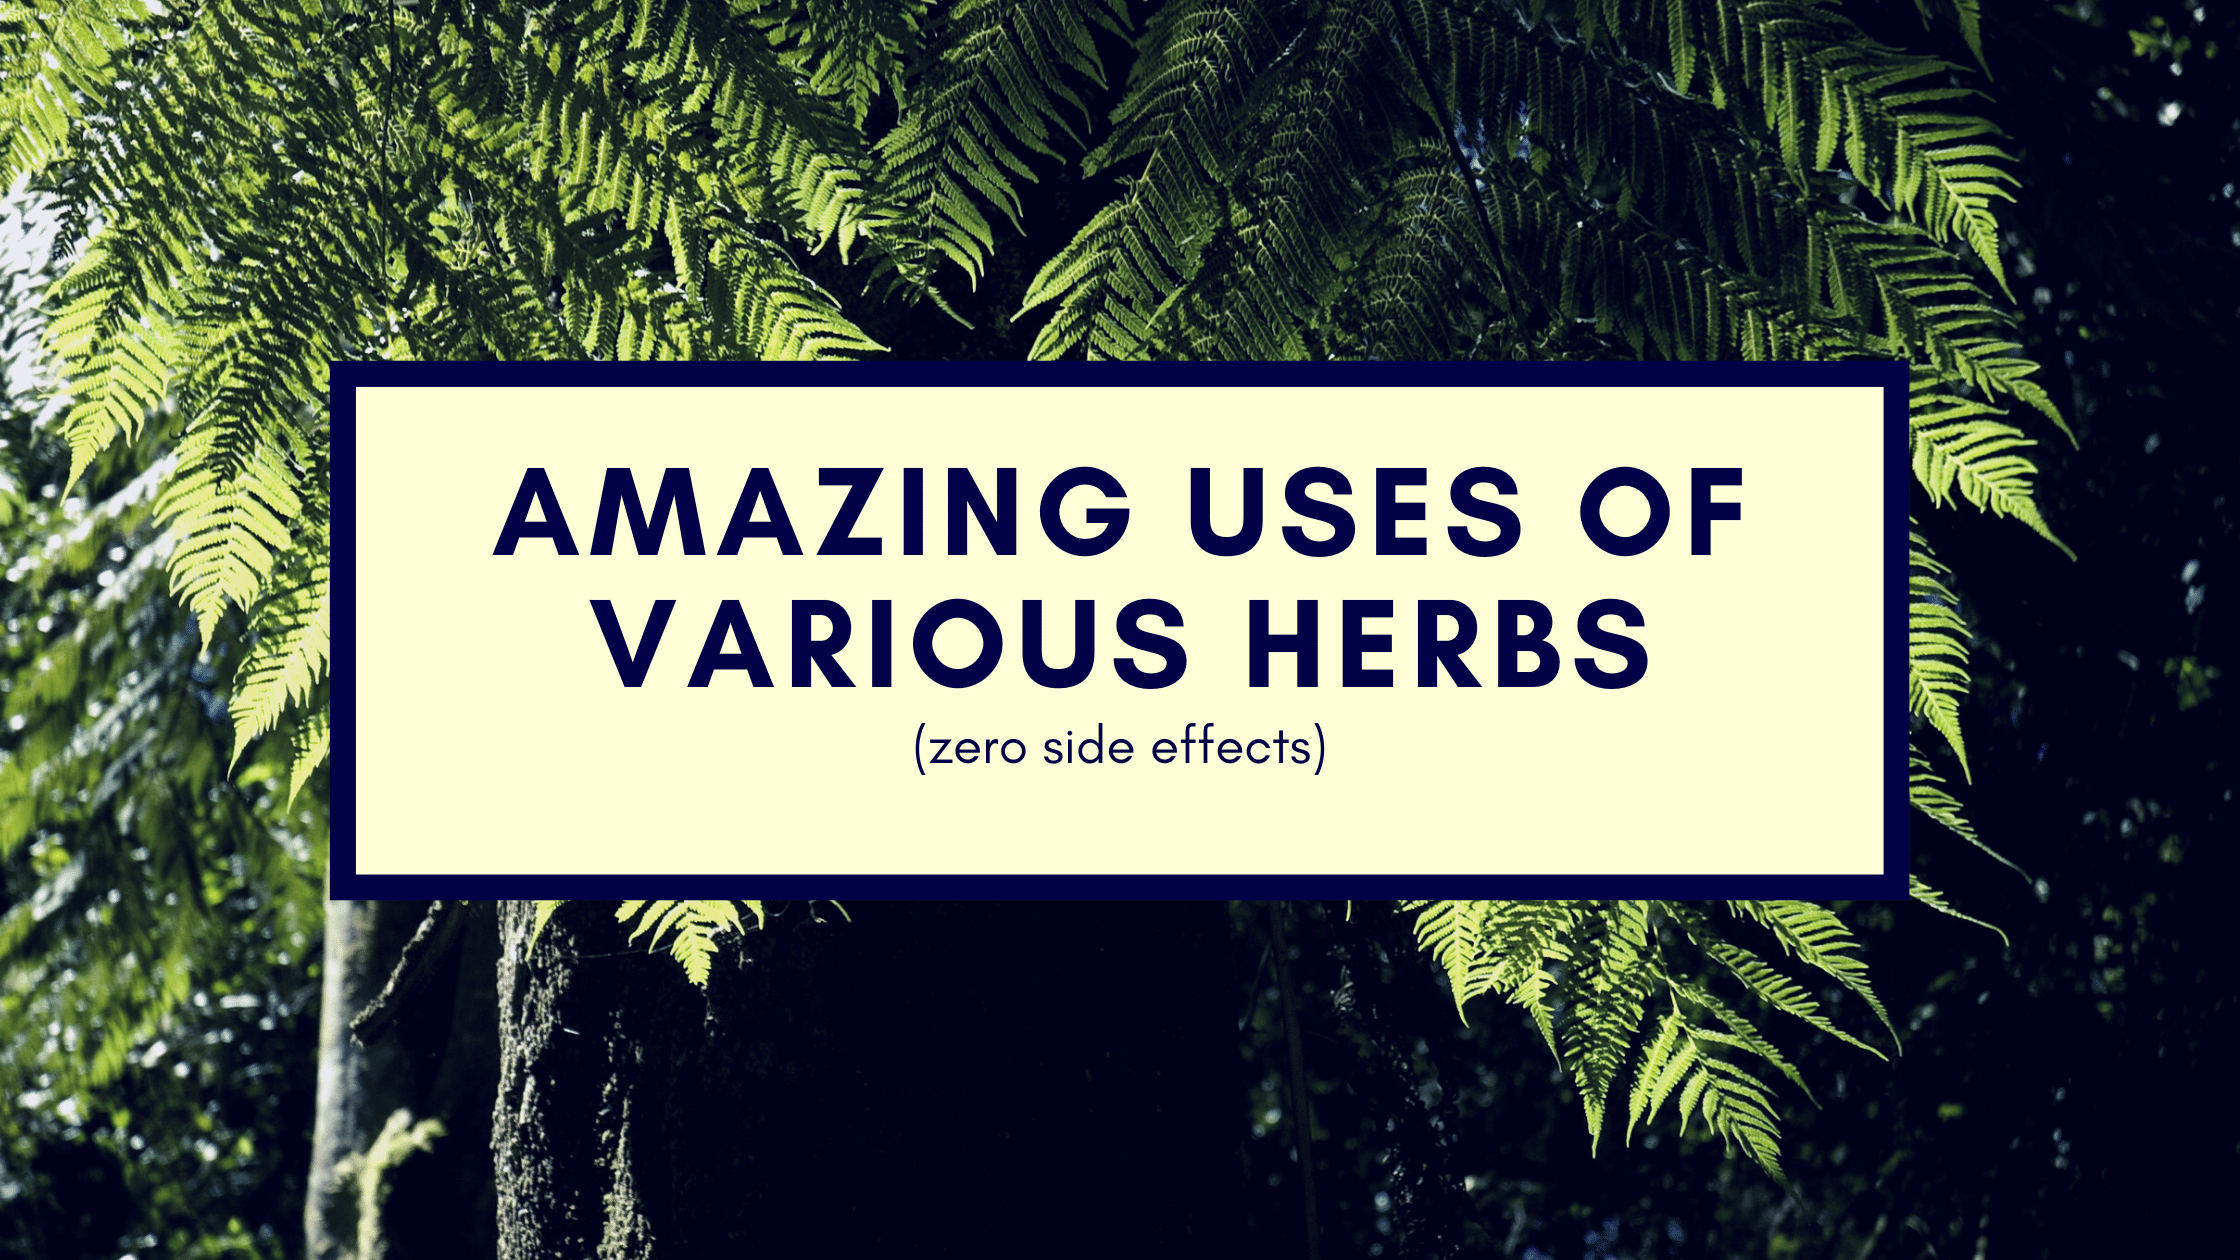 Amazing uses of various herbs zero side effects